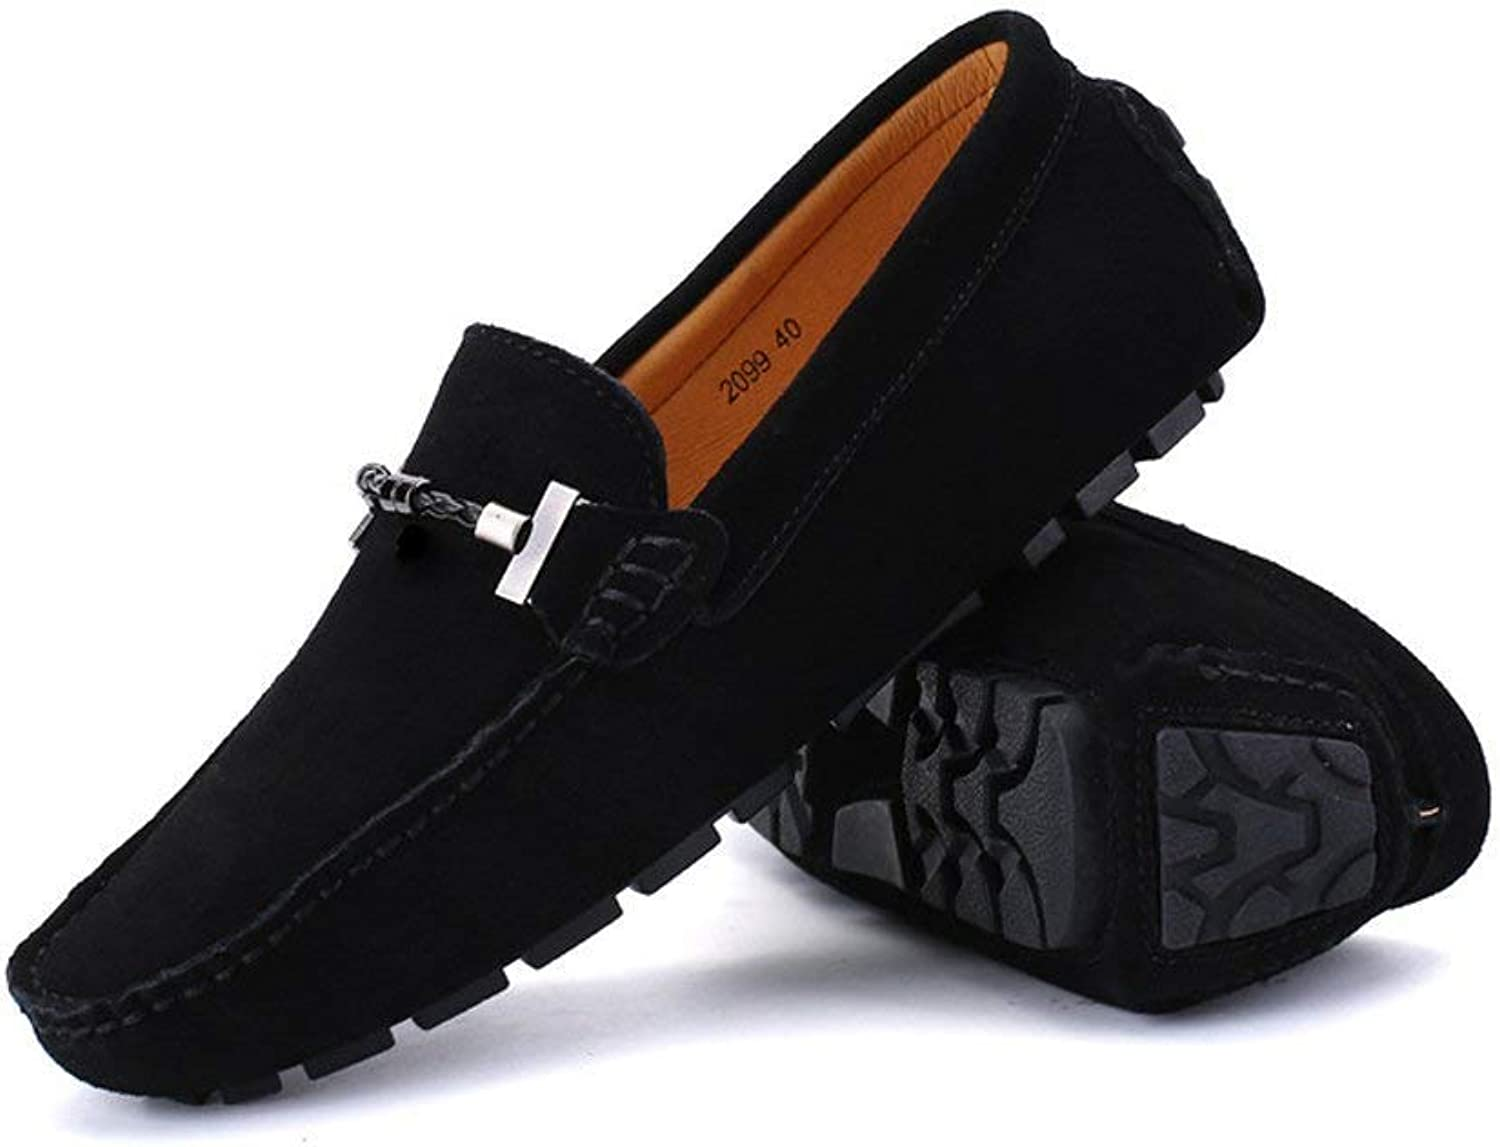 Men's Moccasins shoes, Men Driving Low-Top Loafers Handmade Seam Suede Genuine Leather Penny Boot Moccasins up to size 47 EU (color  Black, Size  43 EU) ( color   As shown , Size   One size )